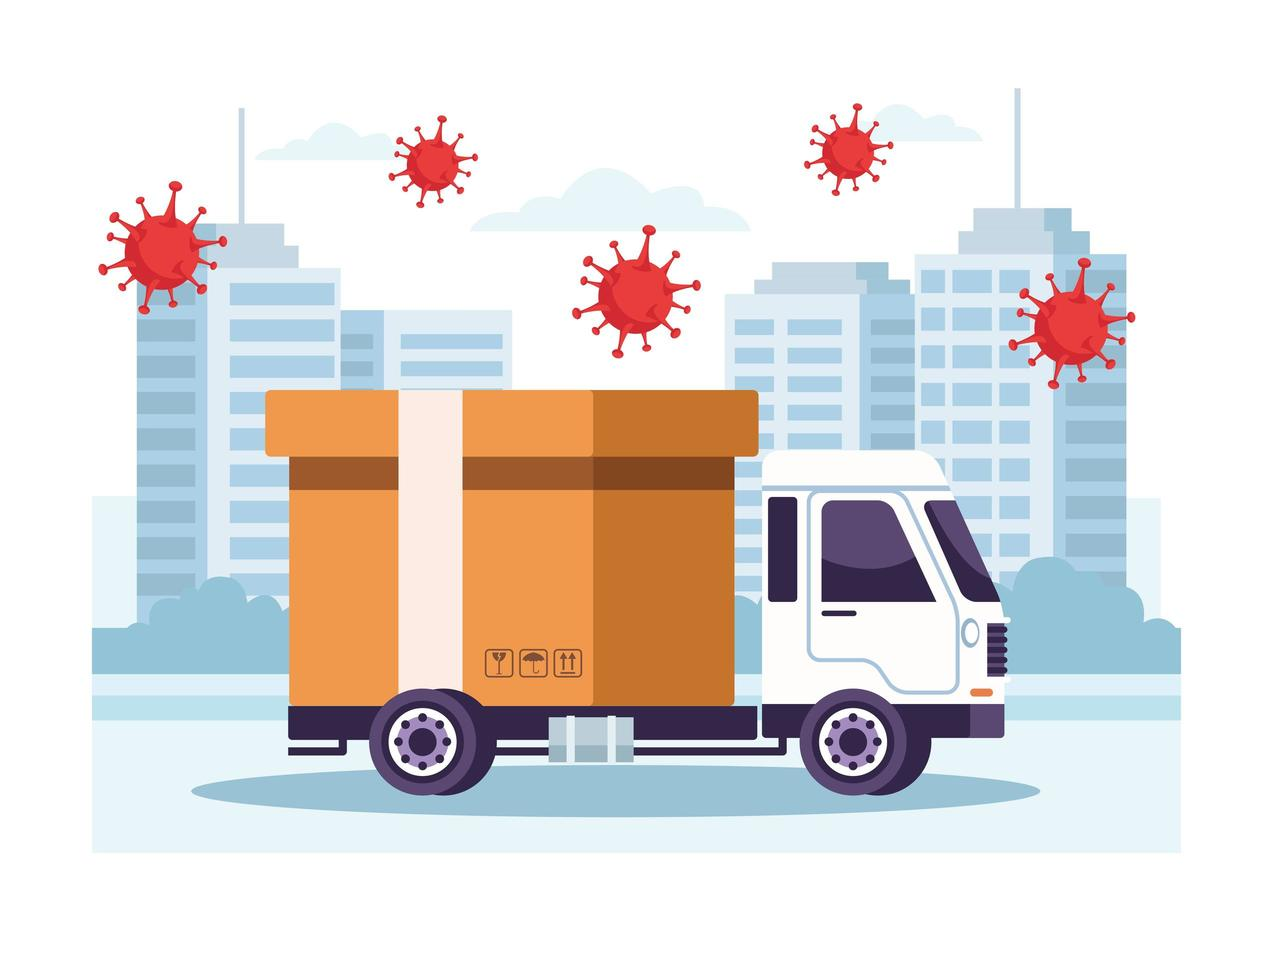 Truck delivery service with some COVID 19 particles vector